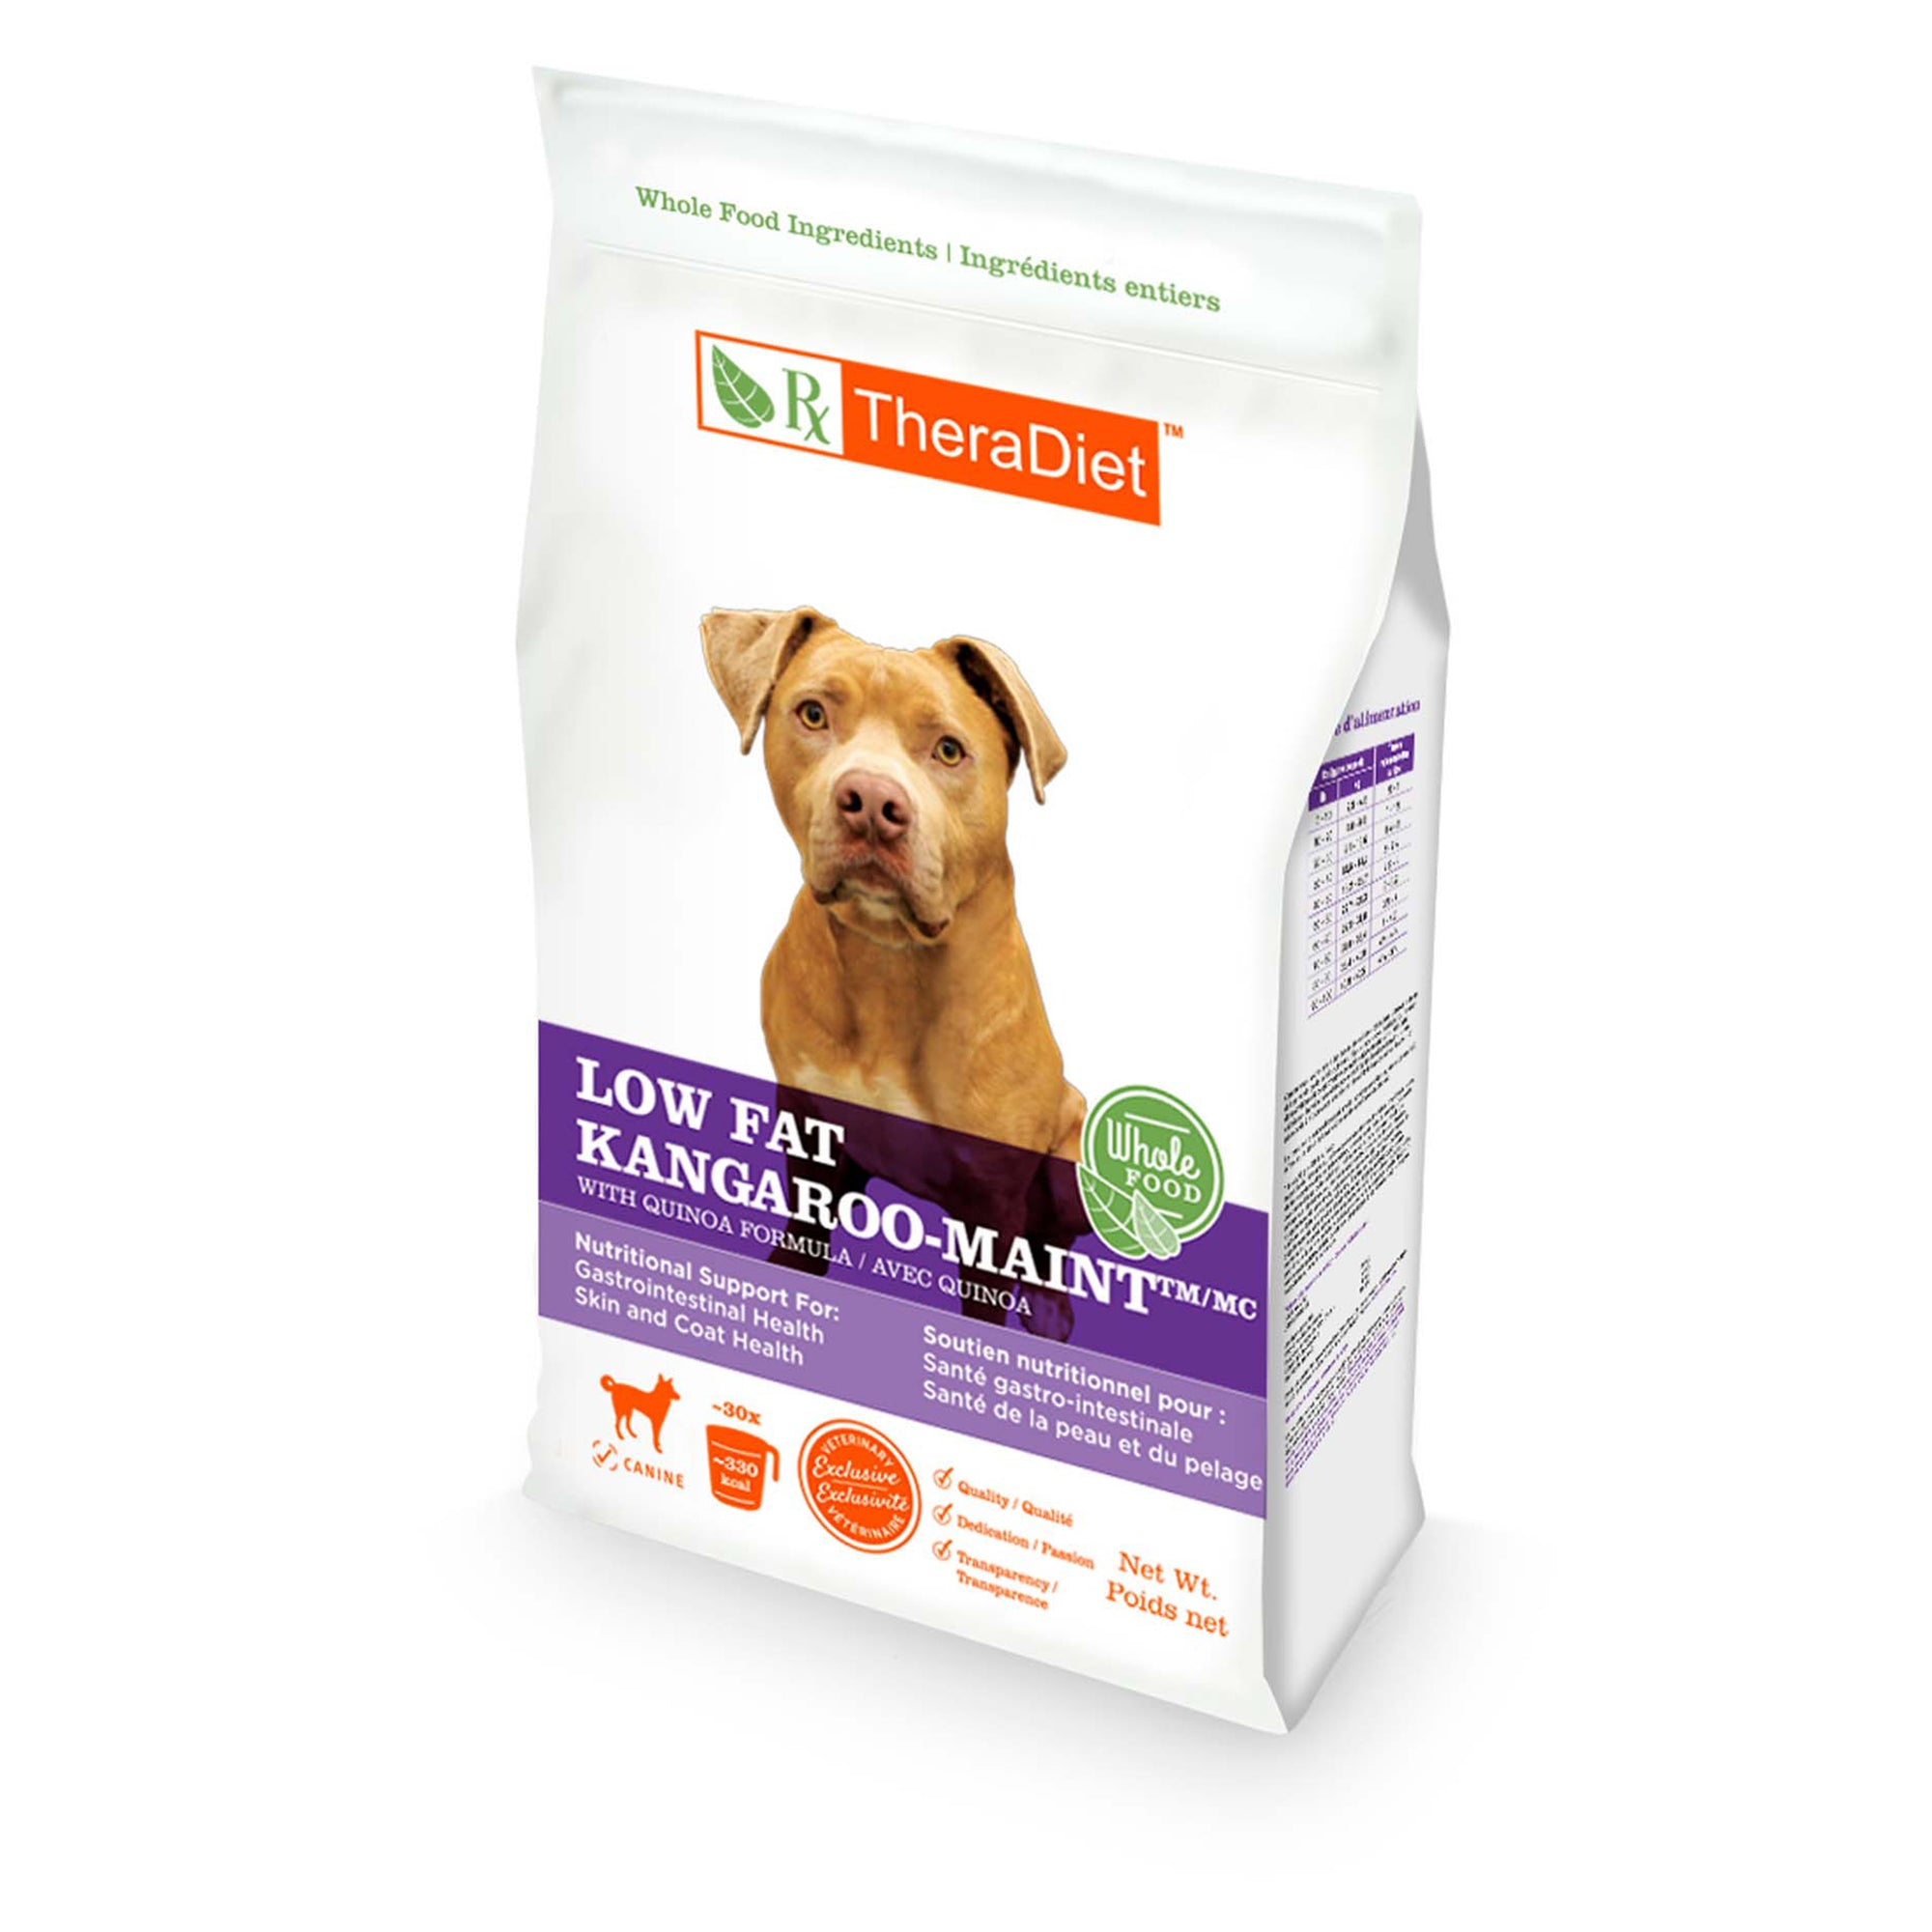 Low Fat Kangaroo-MAINT with Quinoa Canine Bag